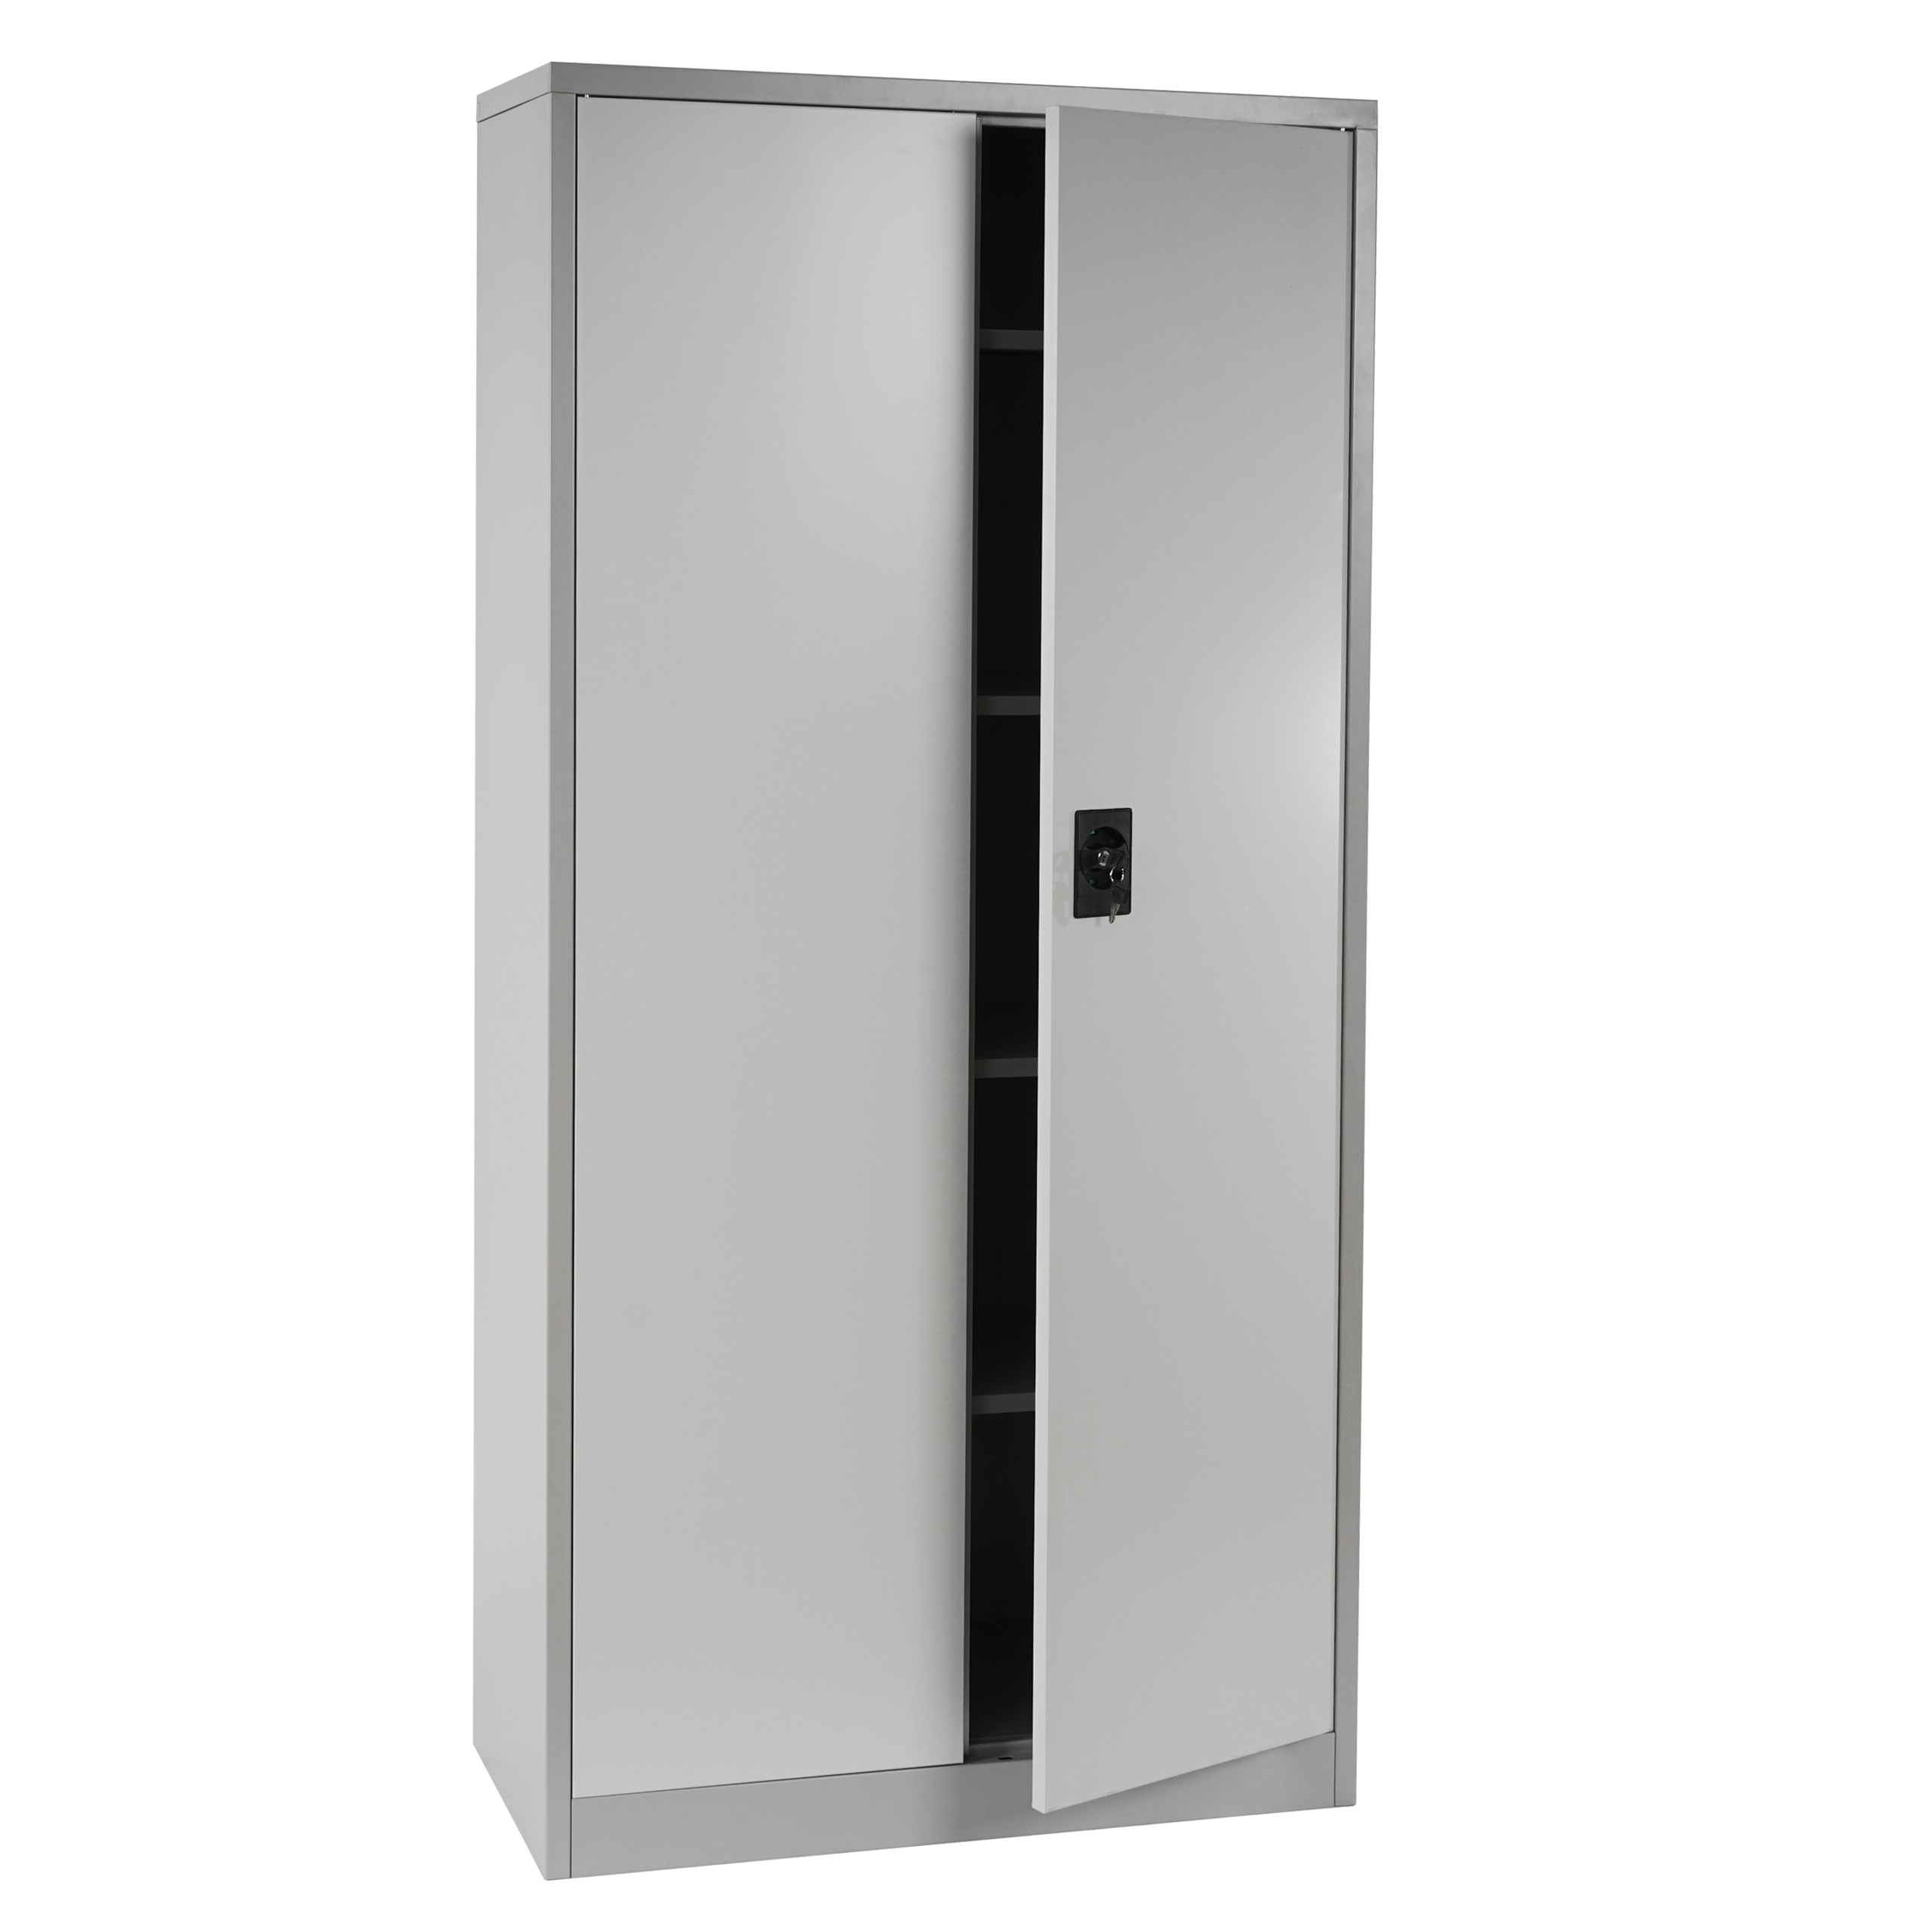 Charmant armoire metallique chambre for Armoire metallique 2 portes